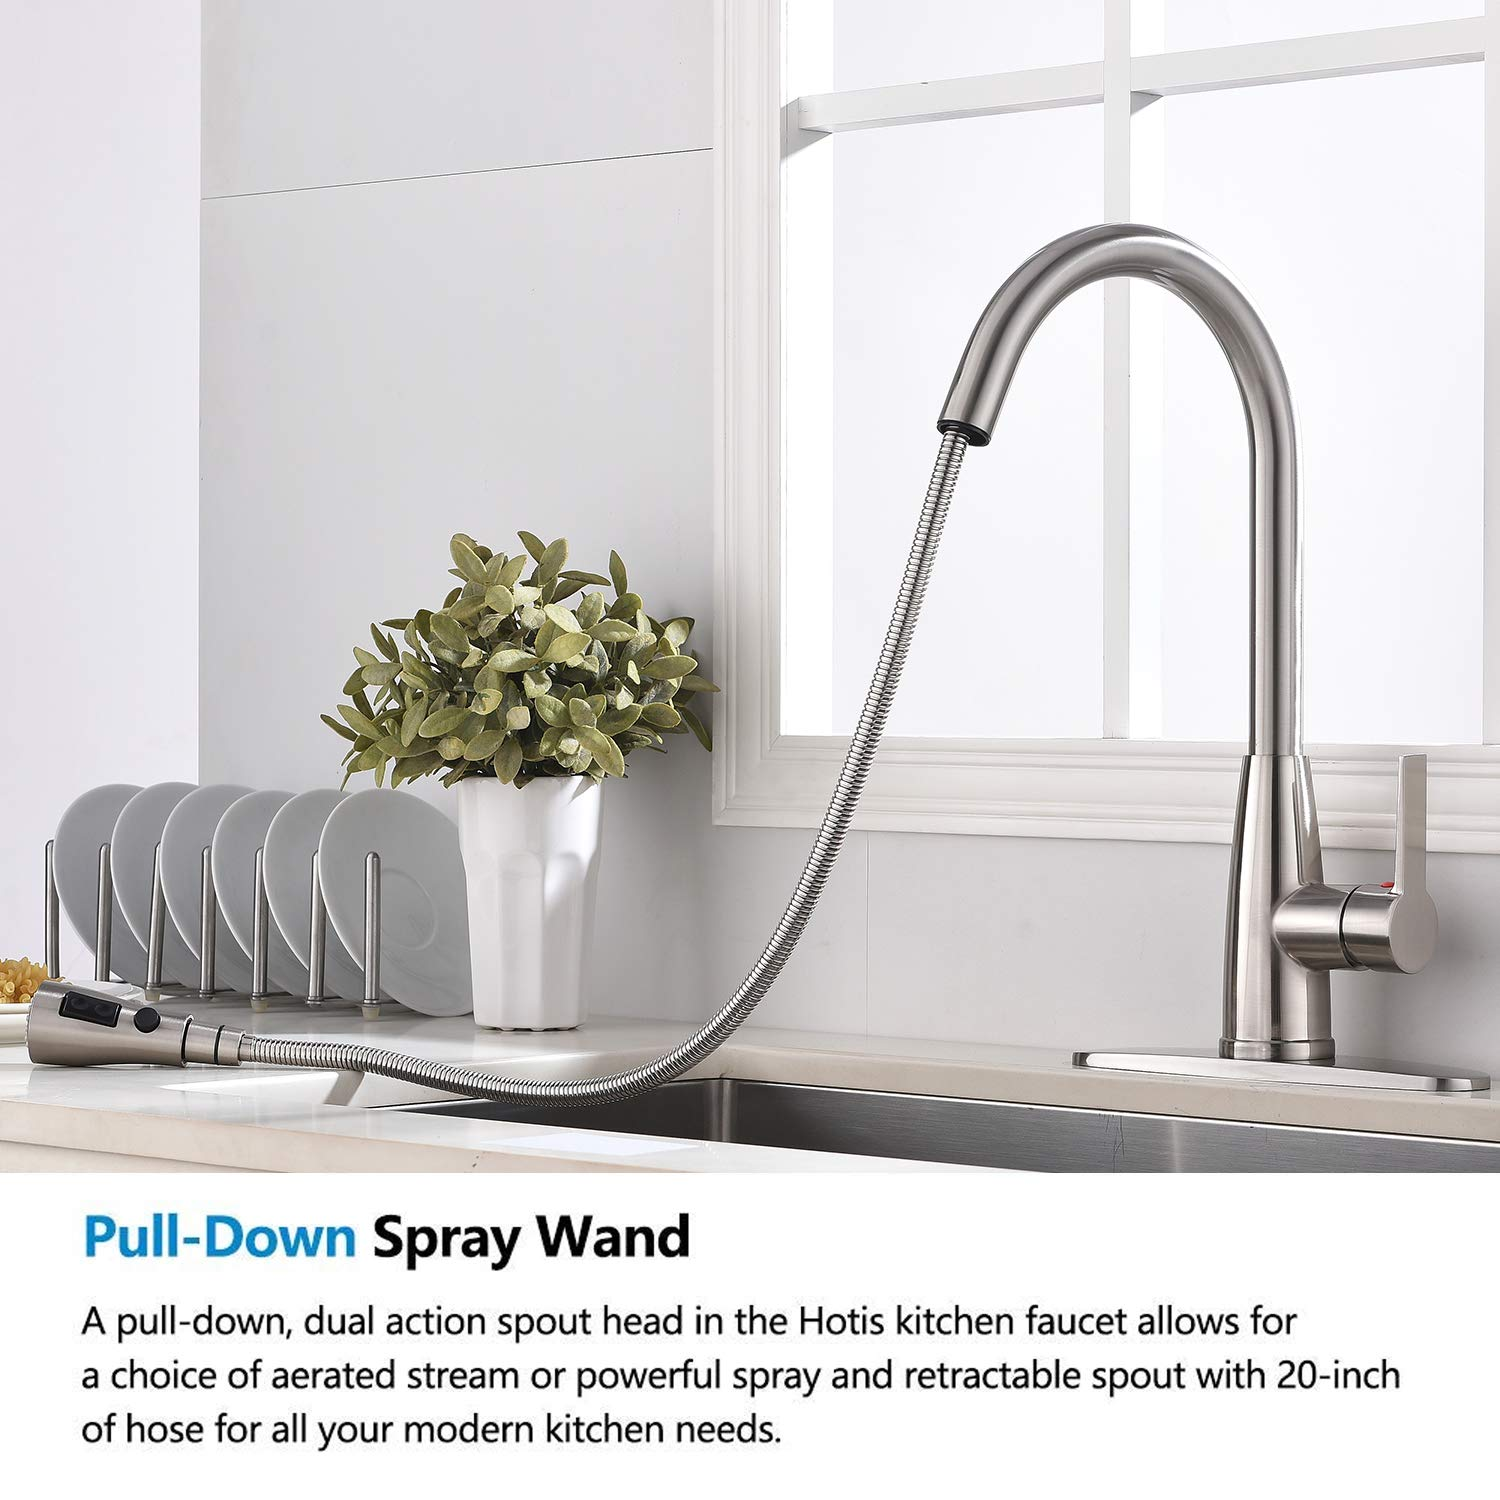 Hotis Modern High Arc 1 or 3 Hole Single Handle Stainless Steel Prep Sprayer Pull Out Pull Down Sprayer Kitchen Sink Faucet, Brushed Nickel with Deck Plate by HOTIS HOME (Image #4)